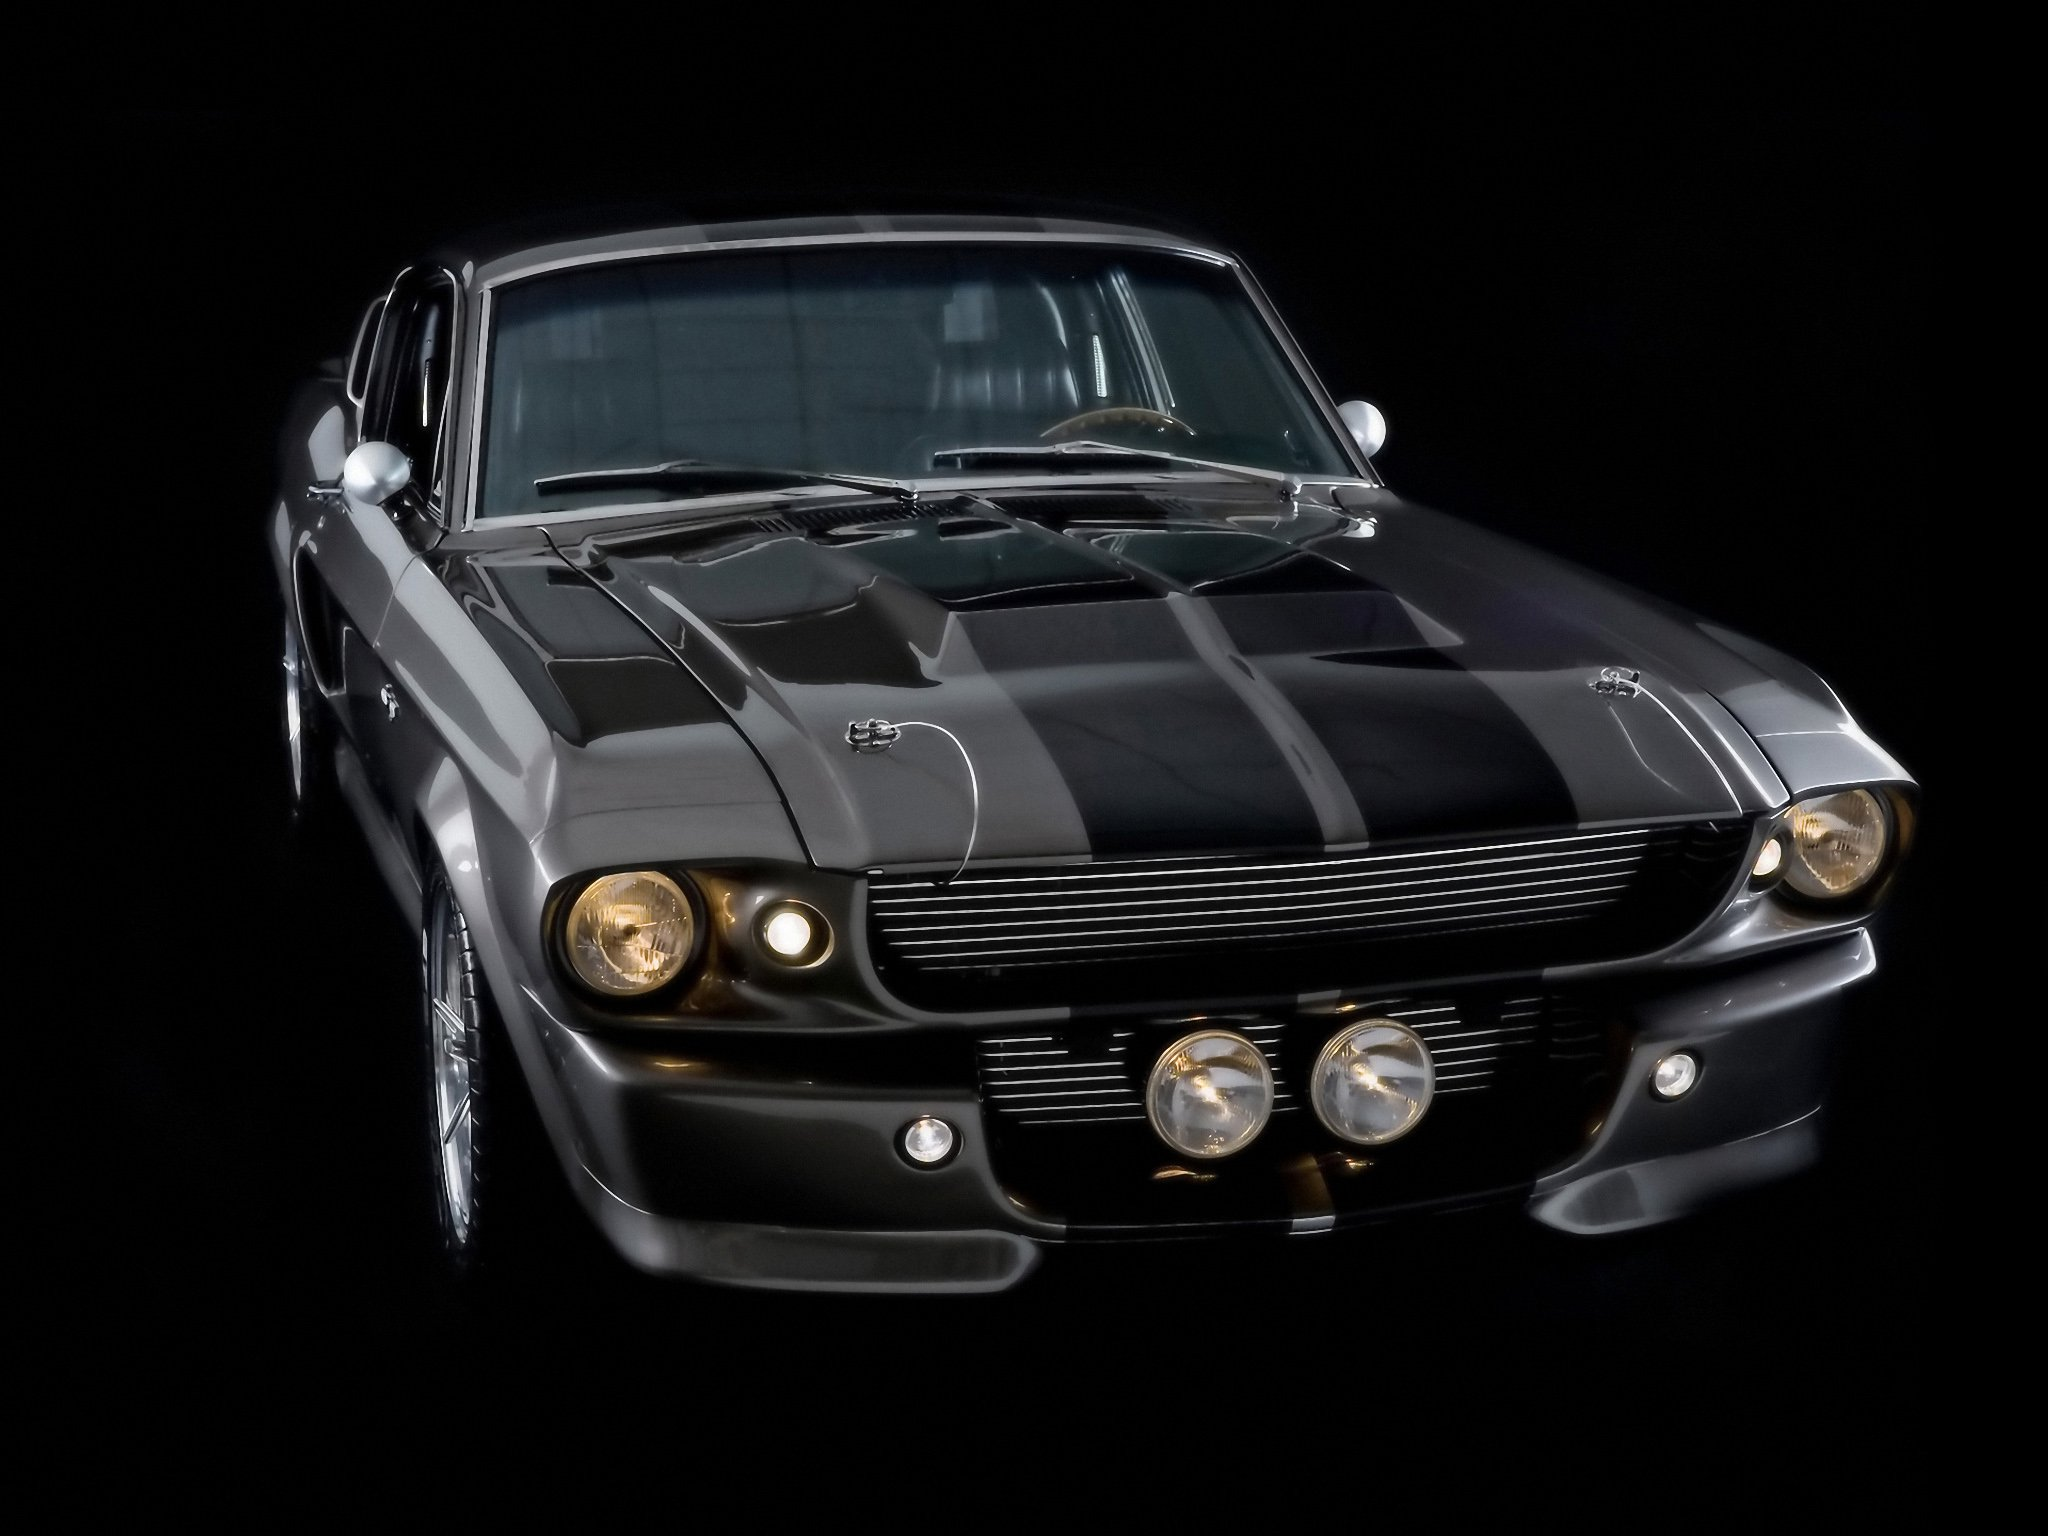 1967 ford mustang shelby cobra gt500 eleanor hot rod rods muscle classic tw wallpaper